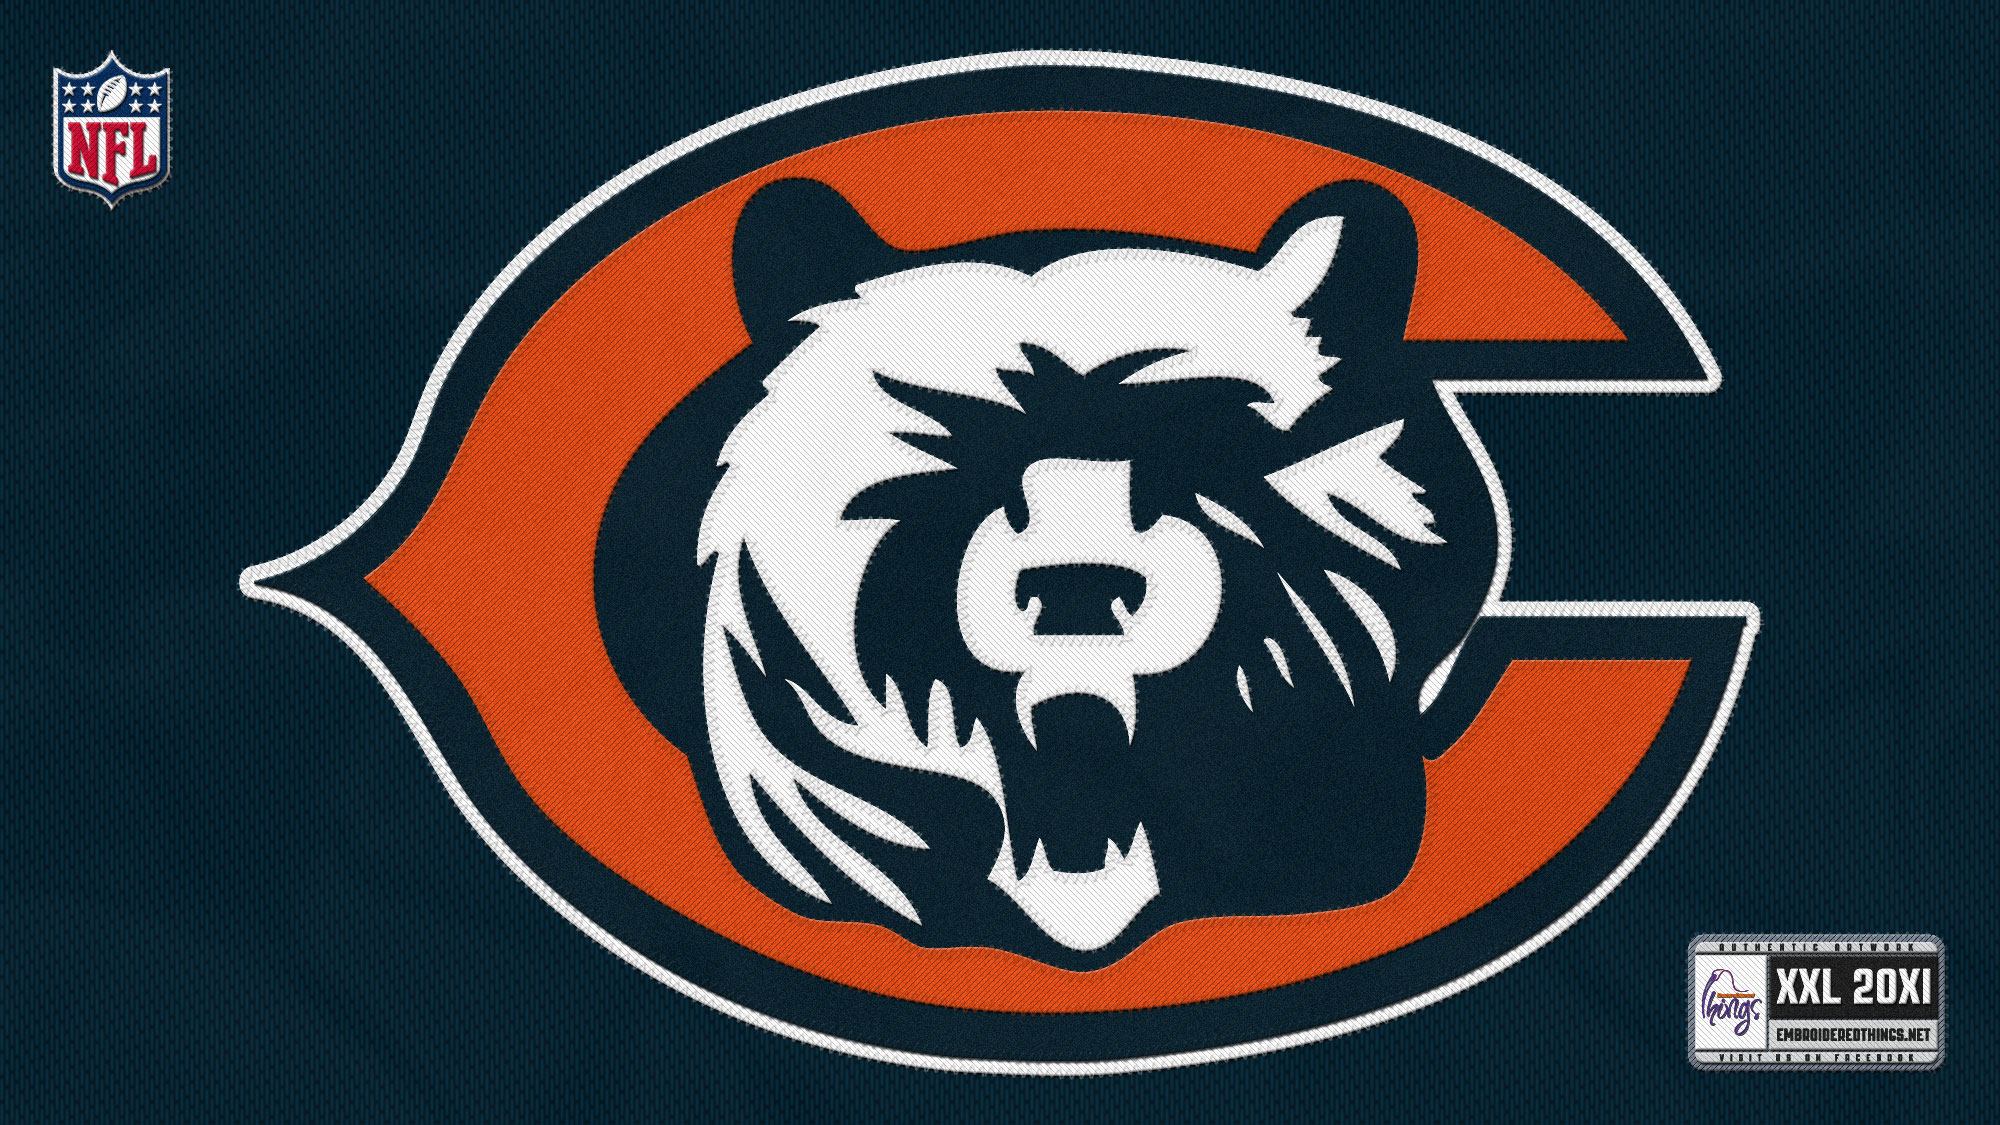 Chicago Bears HD Wallpaper | Background Image | 2000x1125 | ID:431051 - Wallpaper Abyss